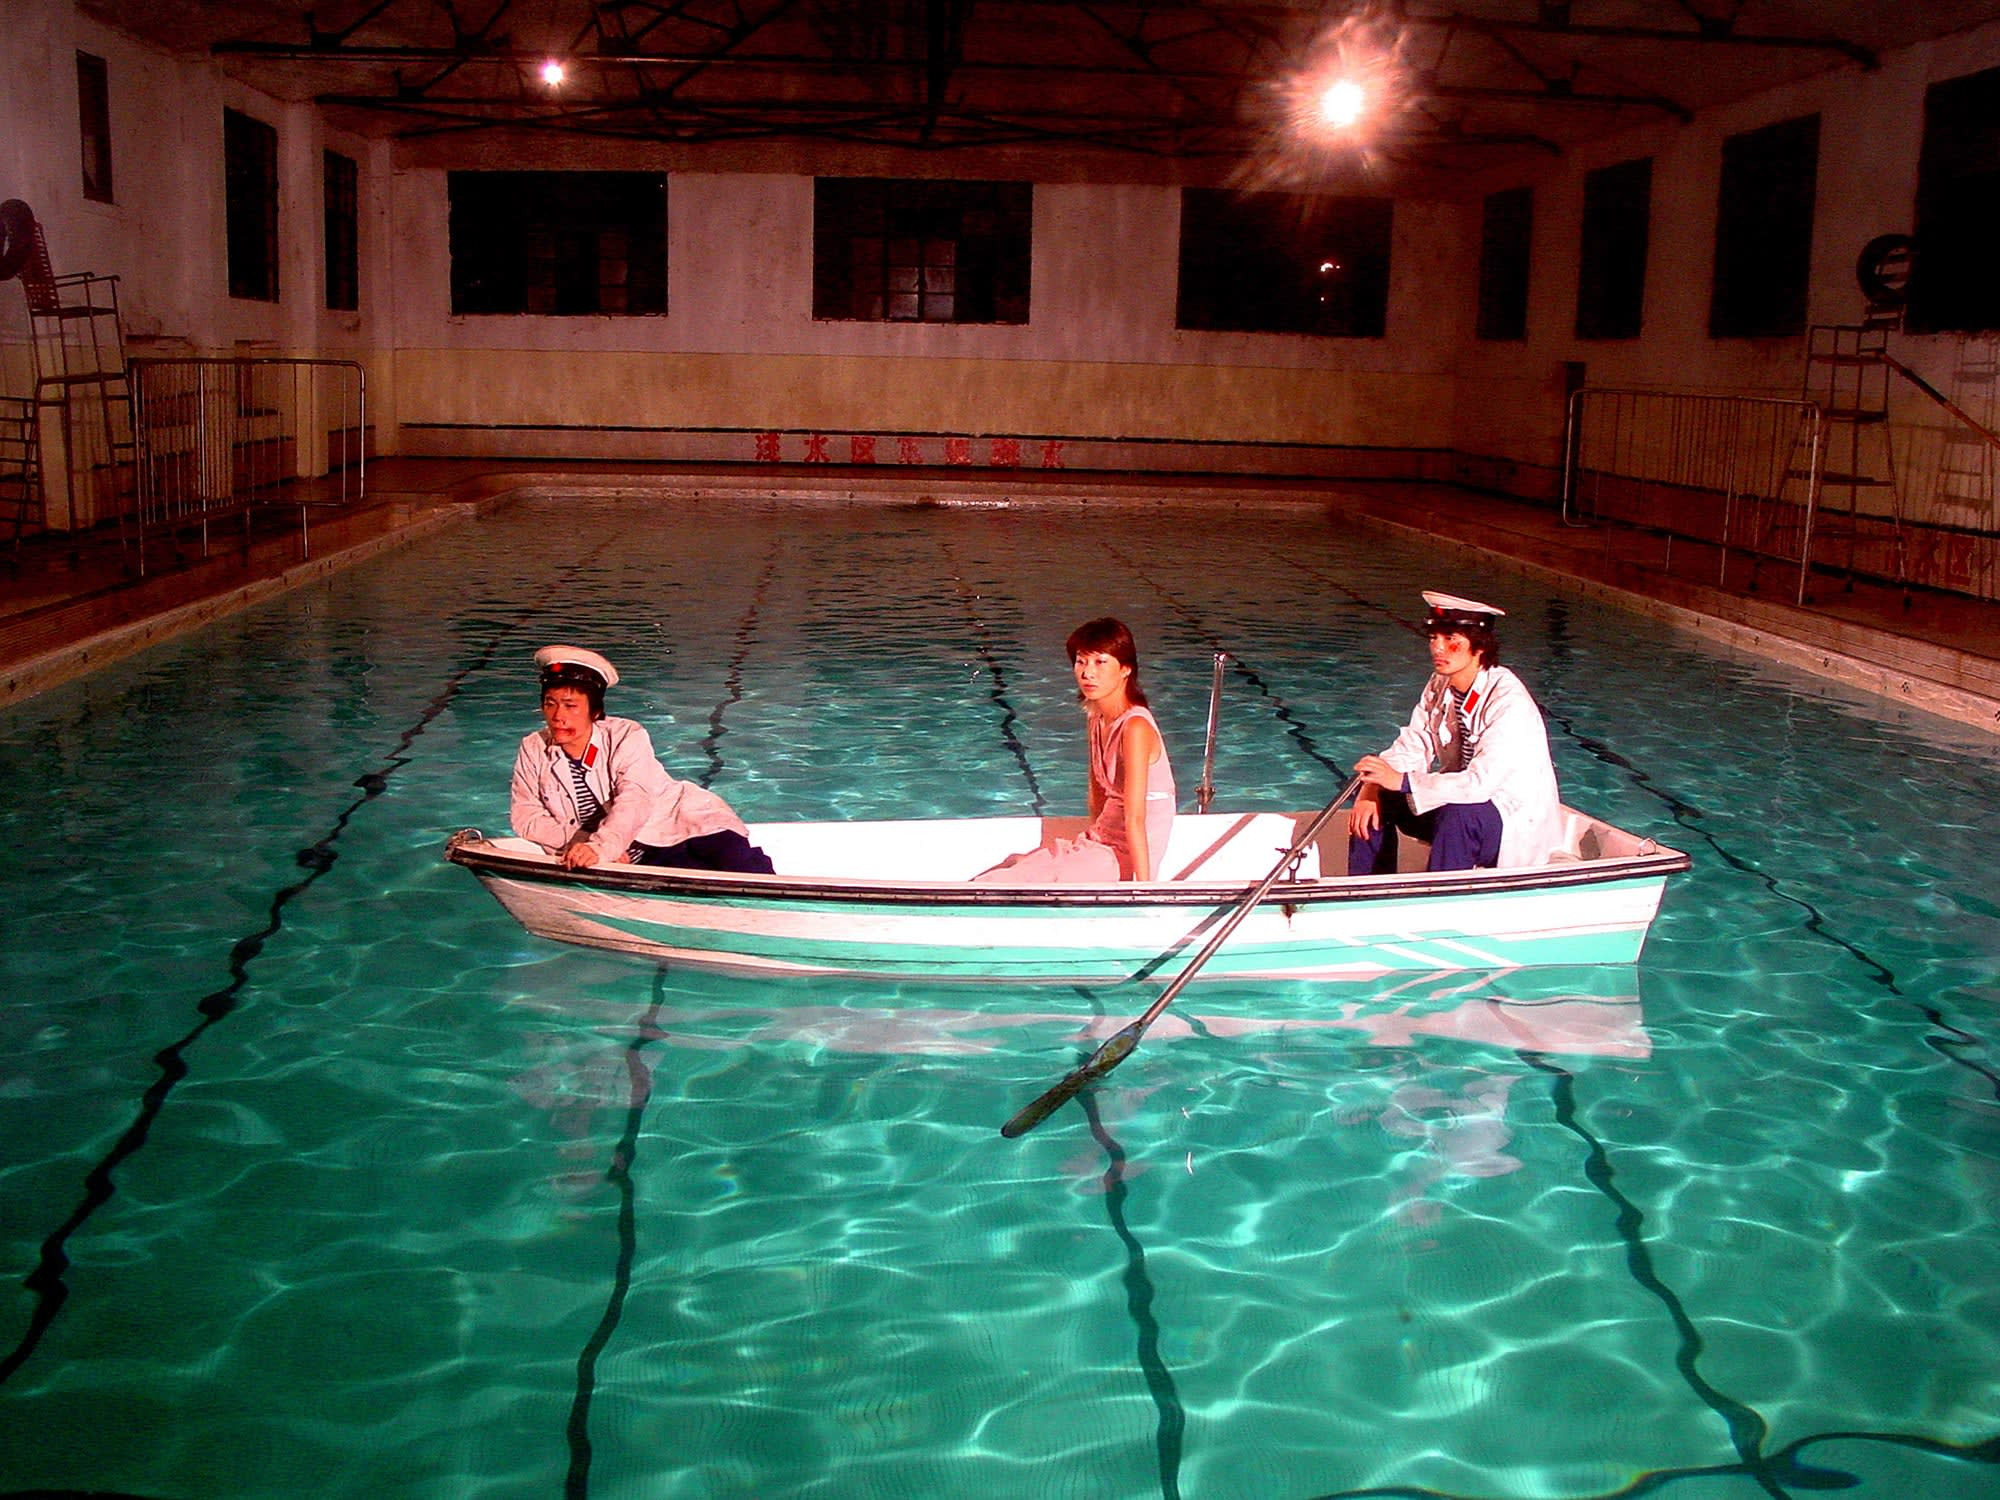 Color photograph of three figures seated in a small boat floating in an indoor swimming pool.